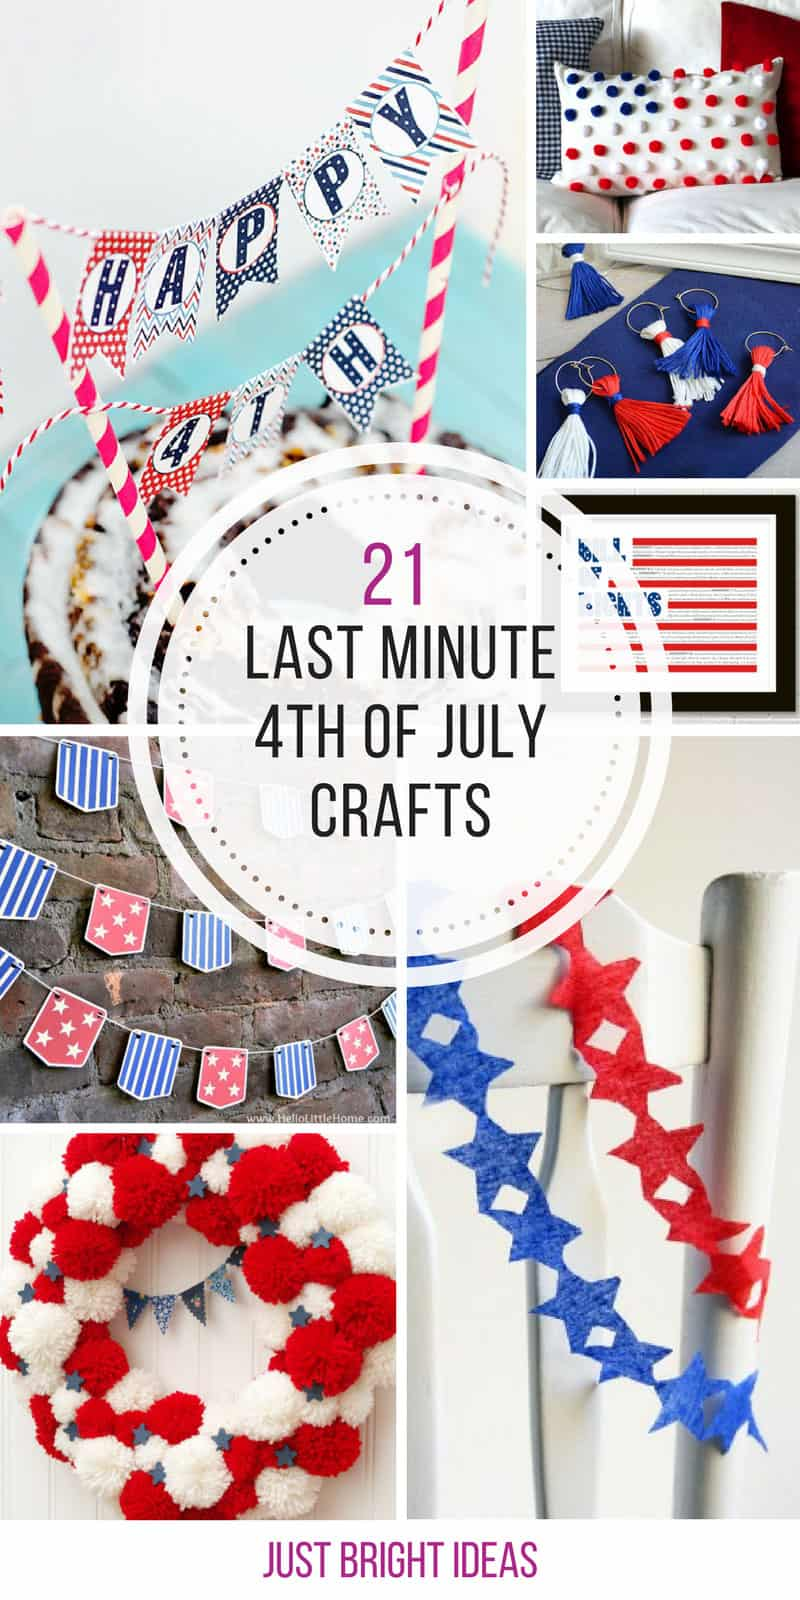 So many great crafts for the 4th of July!